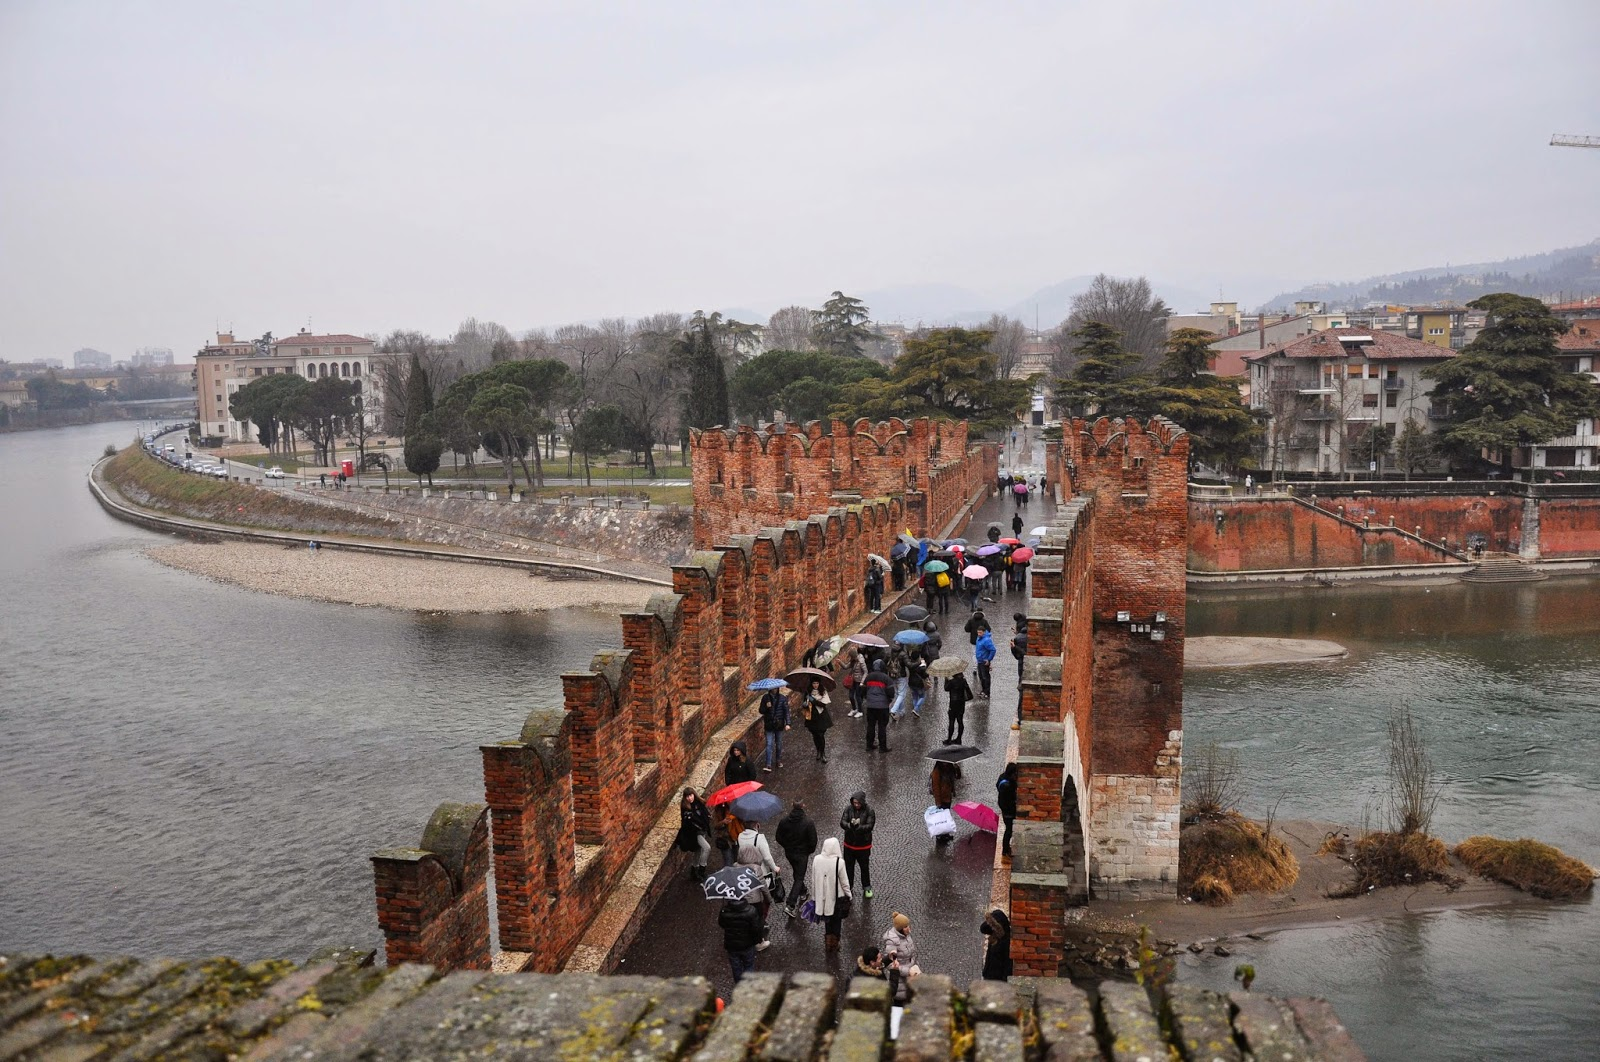 The bridge of Castelvecchio in Verona